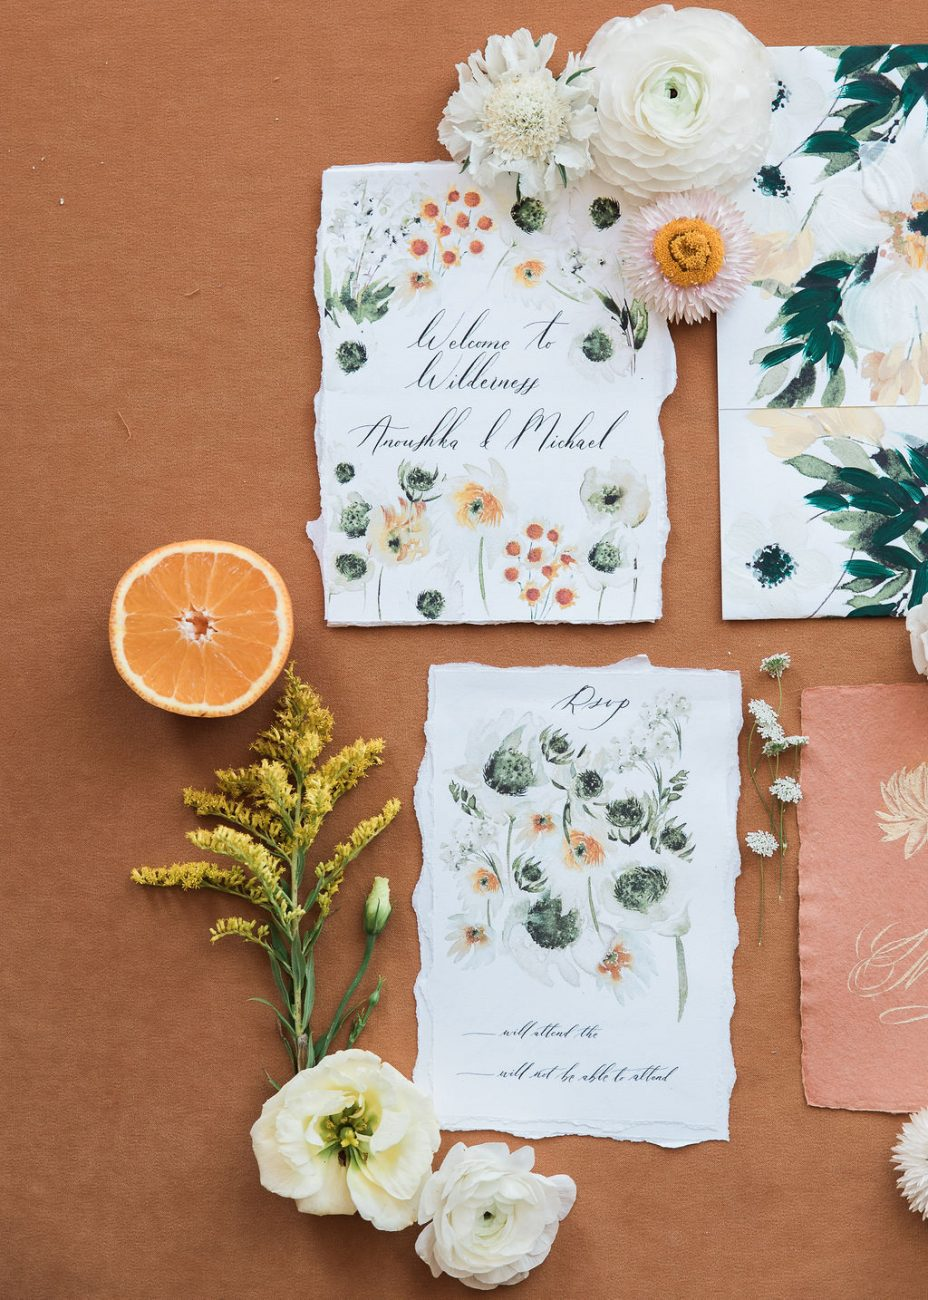 Floral wedding invitations with daisies and watercolour details